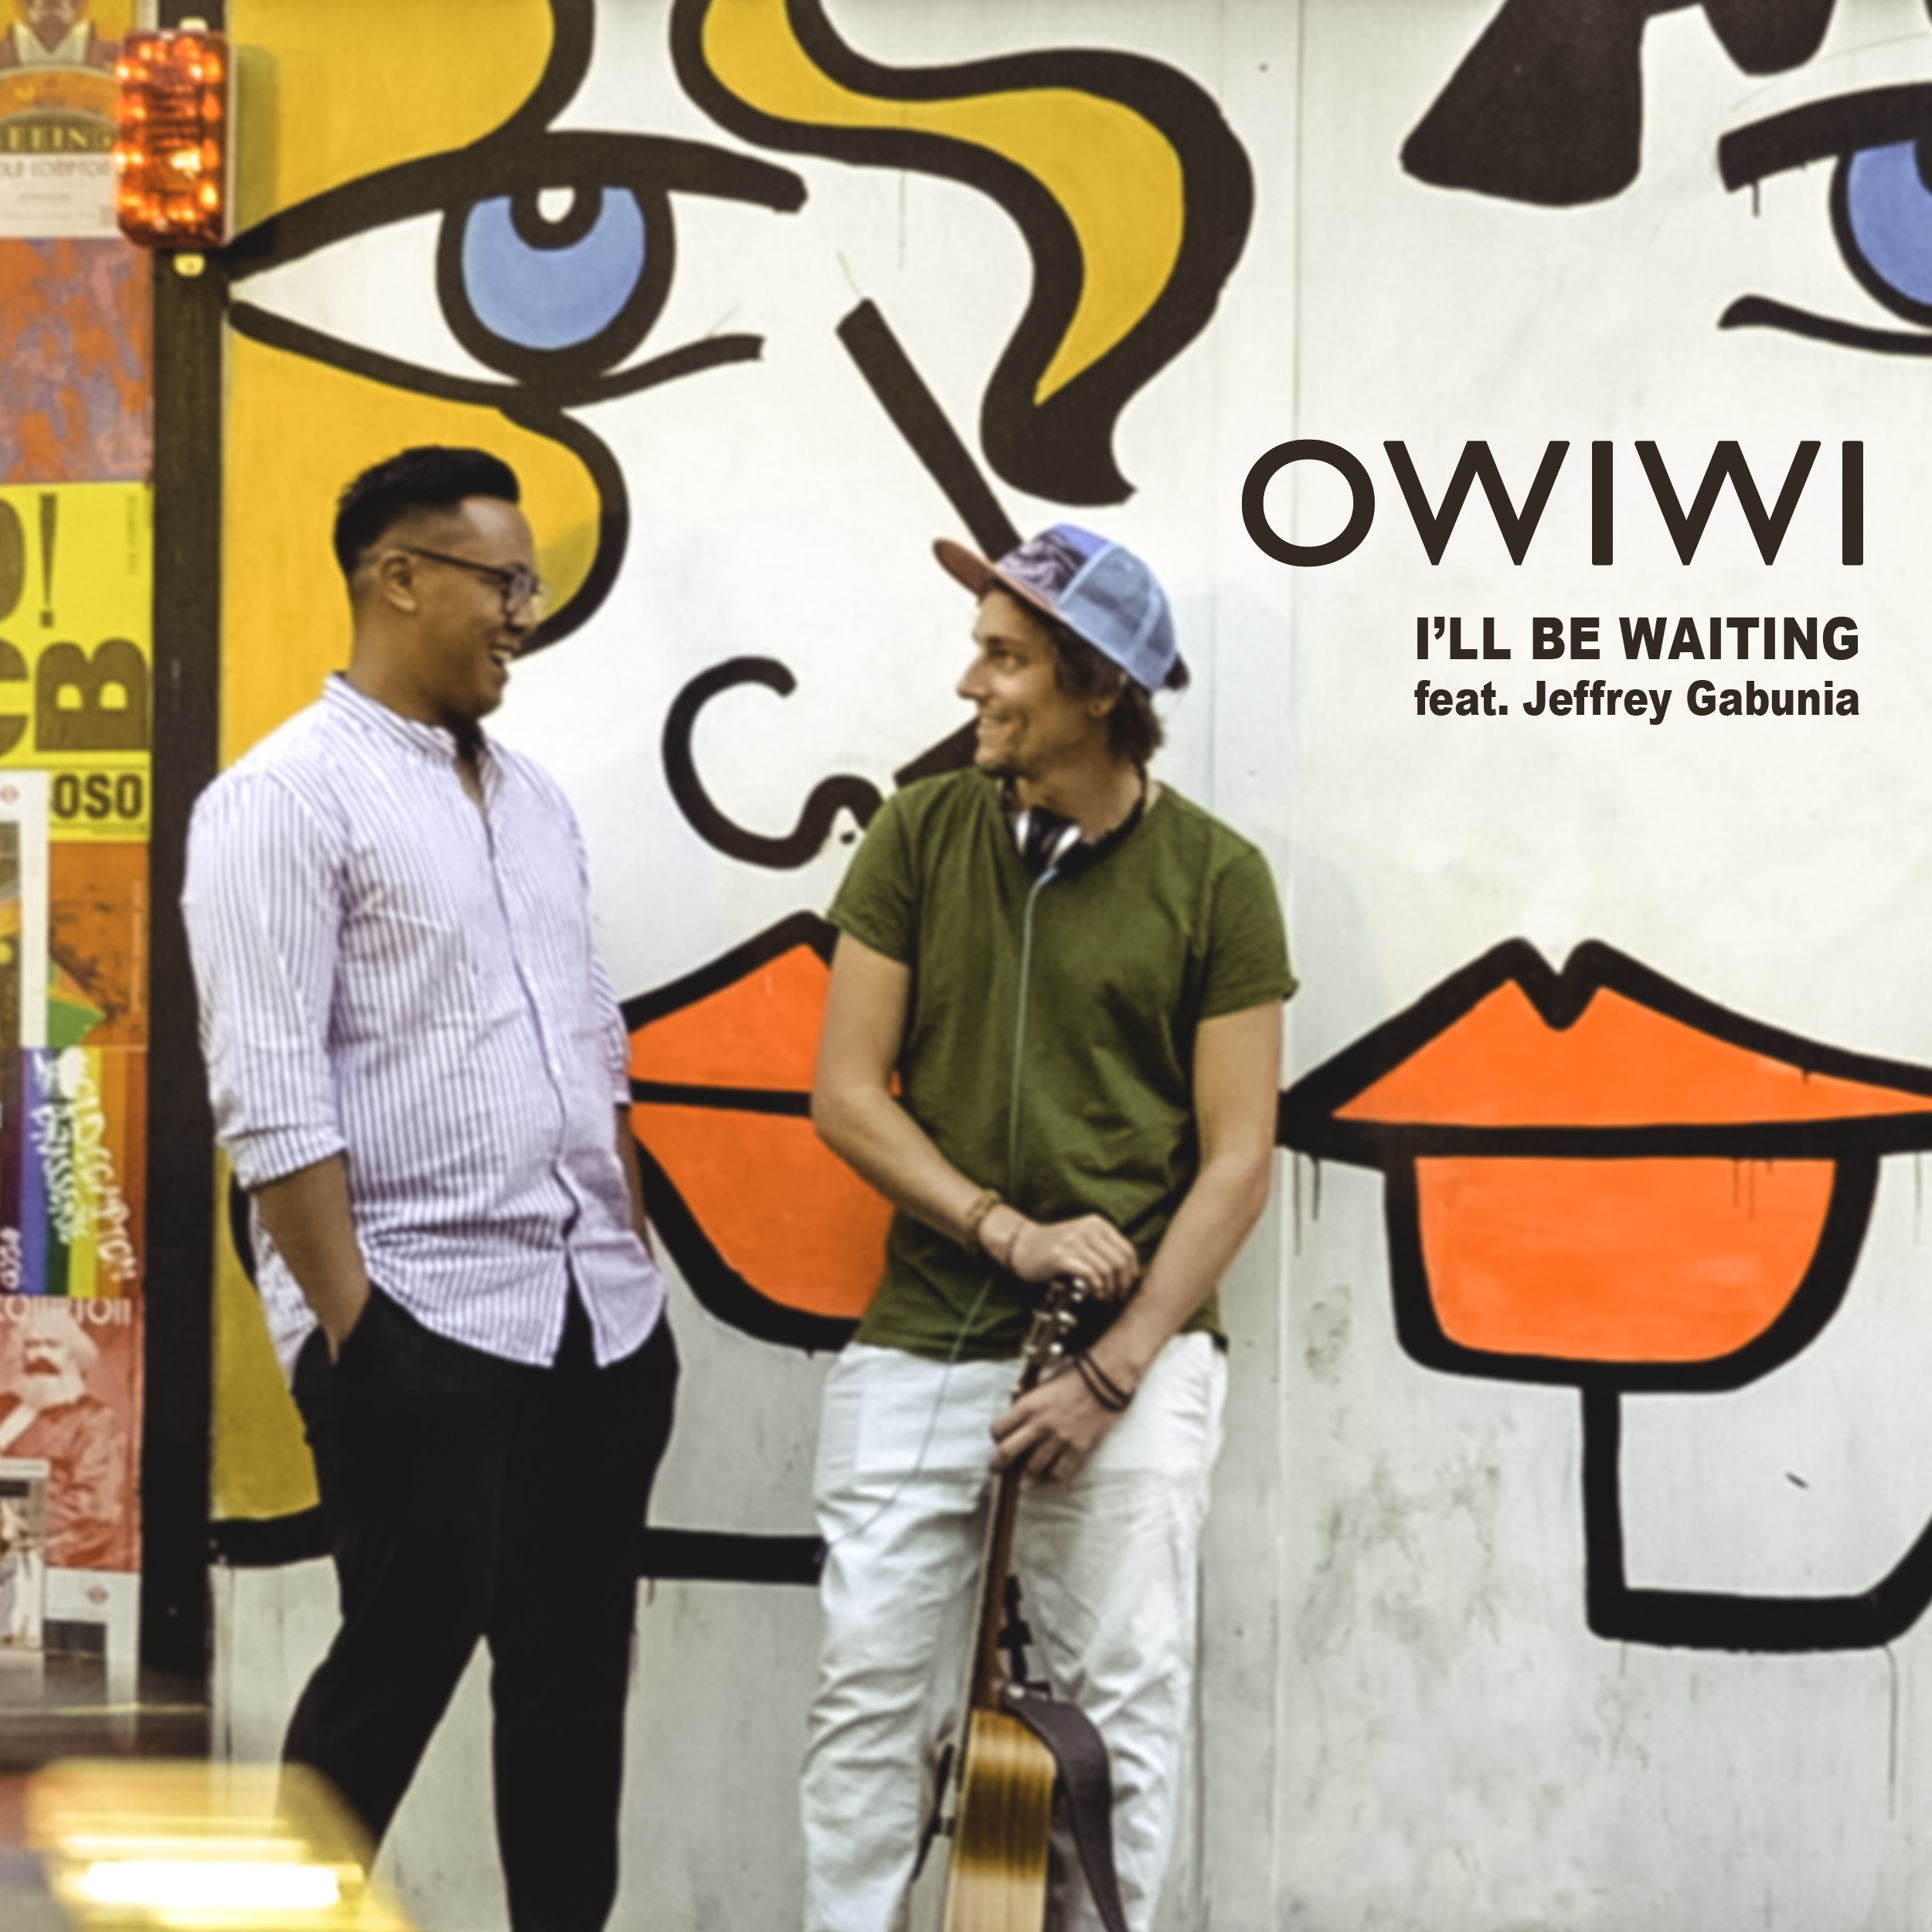 New Single out – I'll Be Waiting